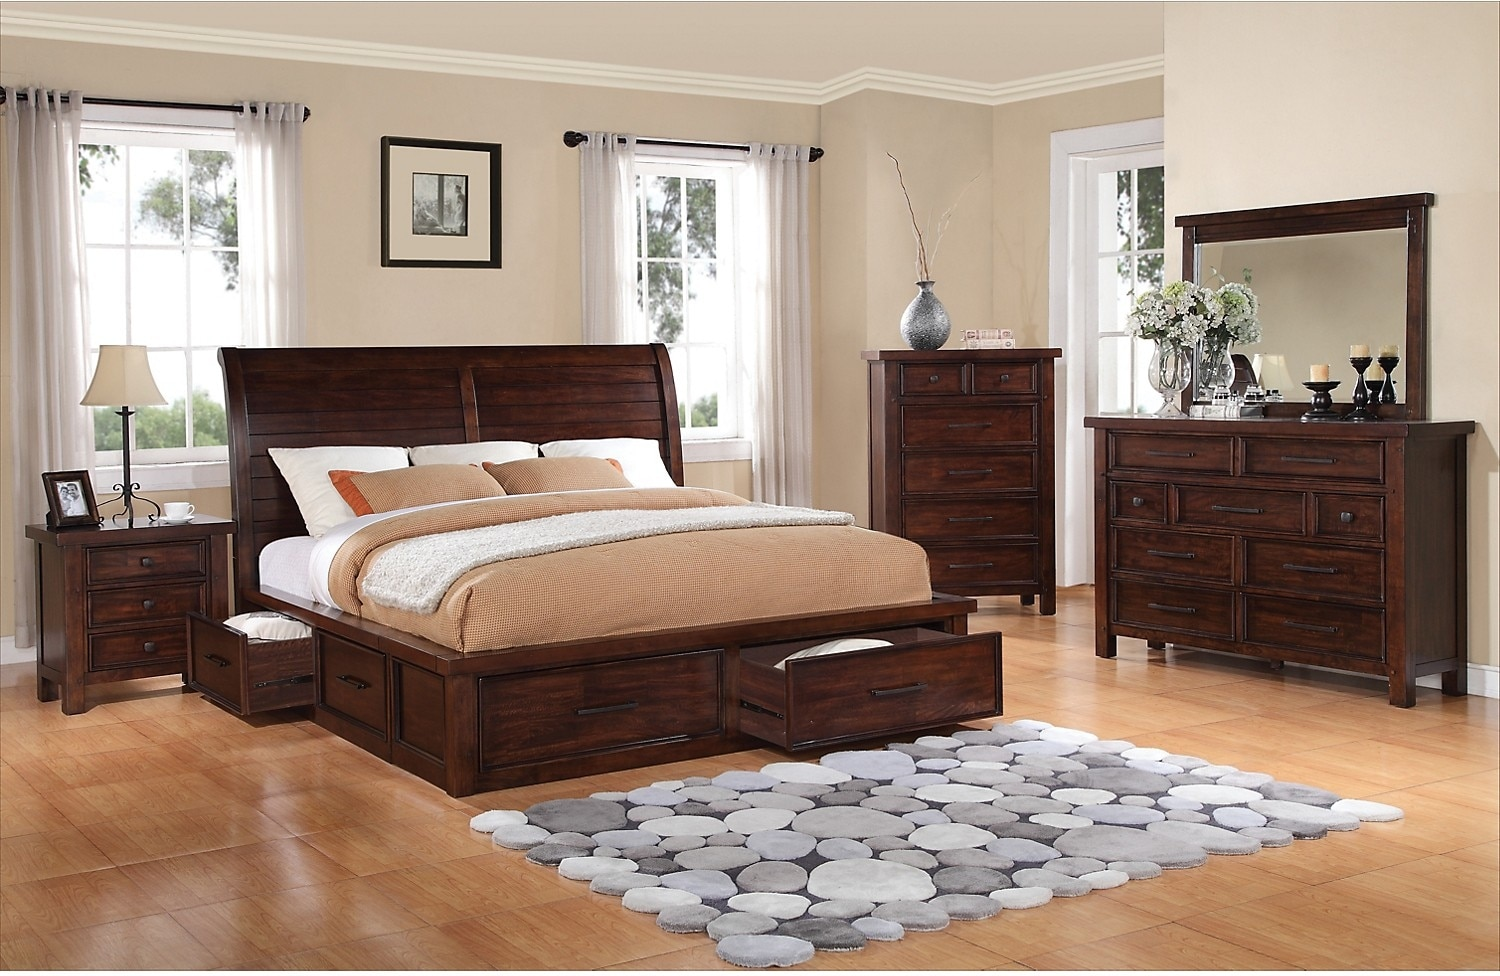 Bedroom Furniture - Sonoma 5-Piece Queen Storage Bedroom Set - Dark Brown